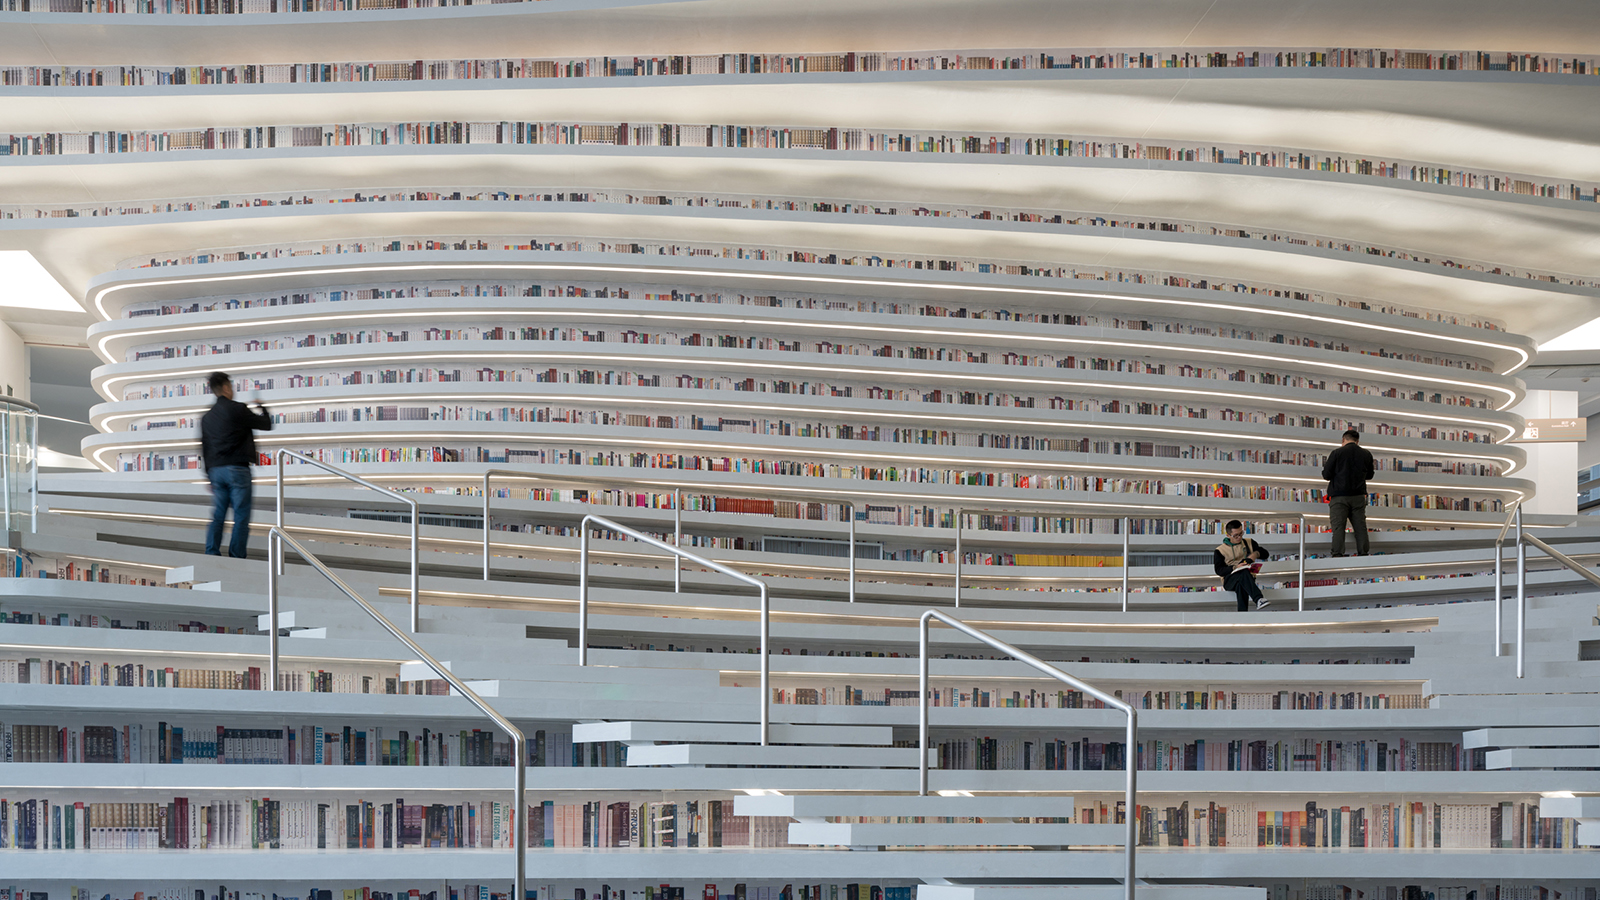 New library in Tianjin, China, looks out of this world   CNN Travel